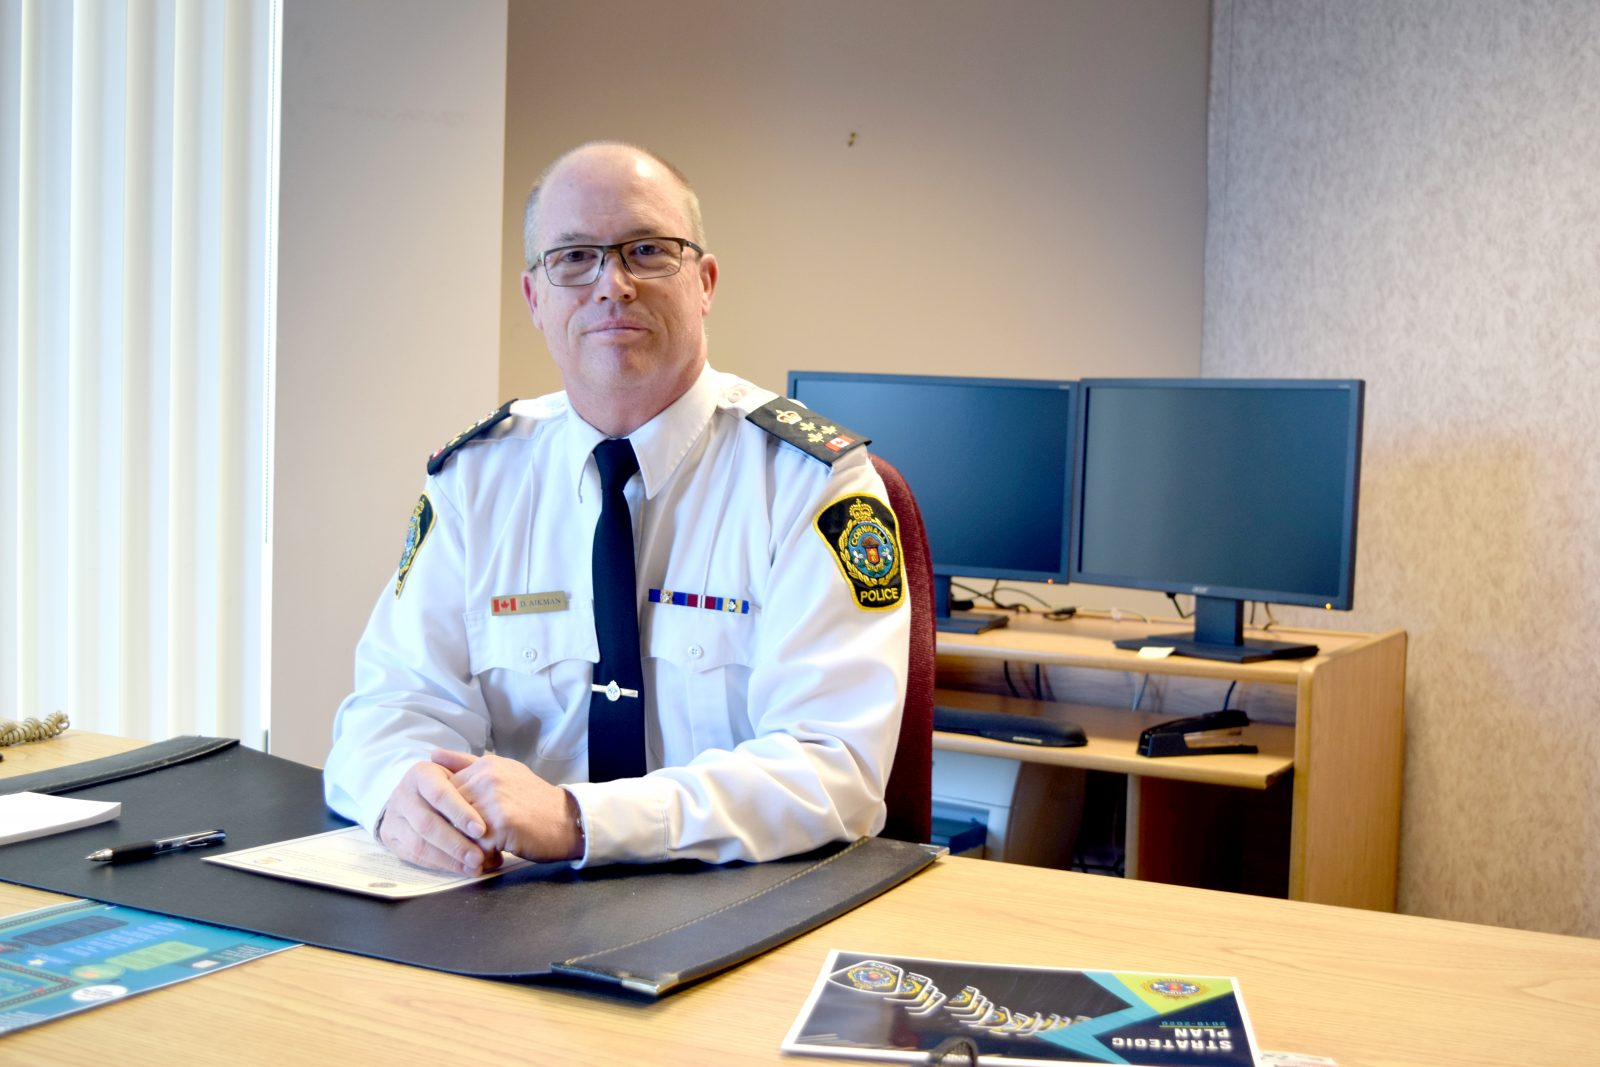 Wellness and community partnerships a focus for new Chief